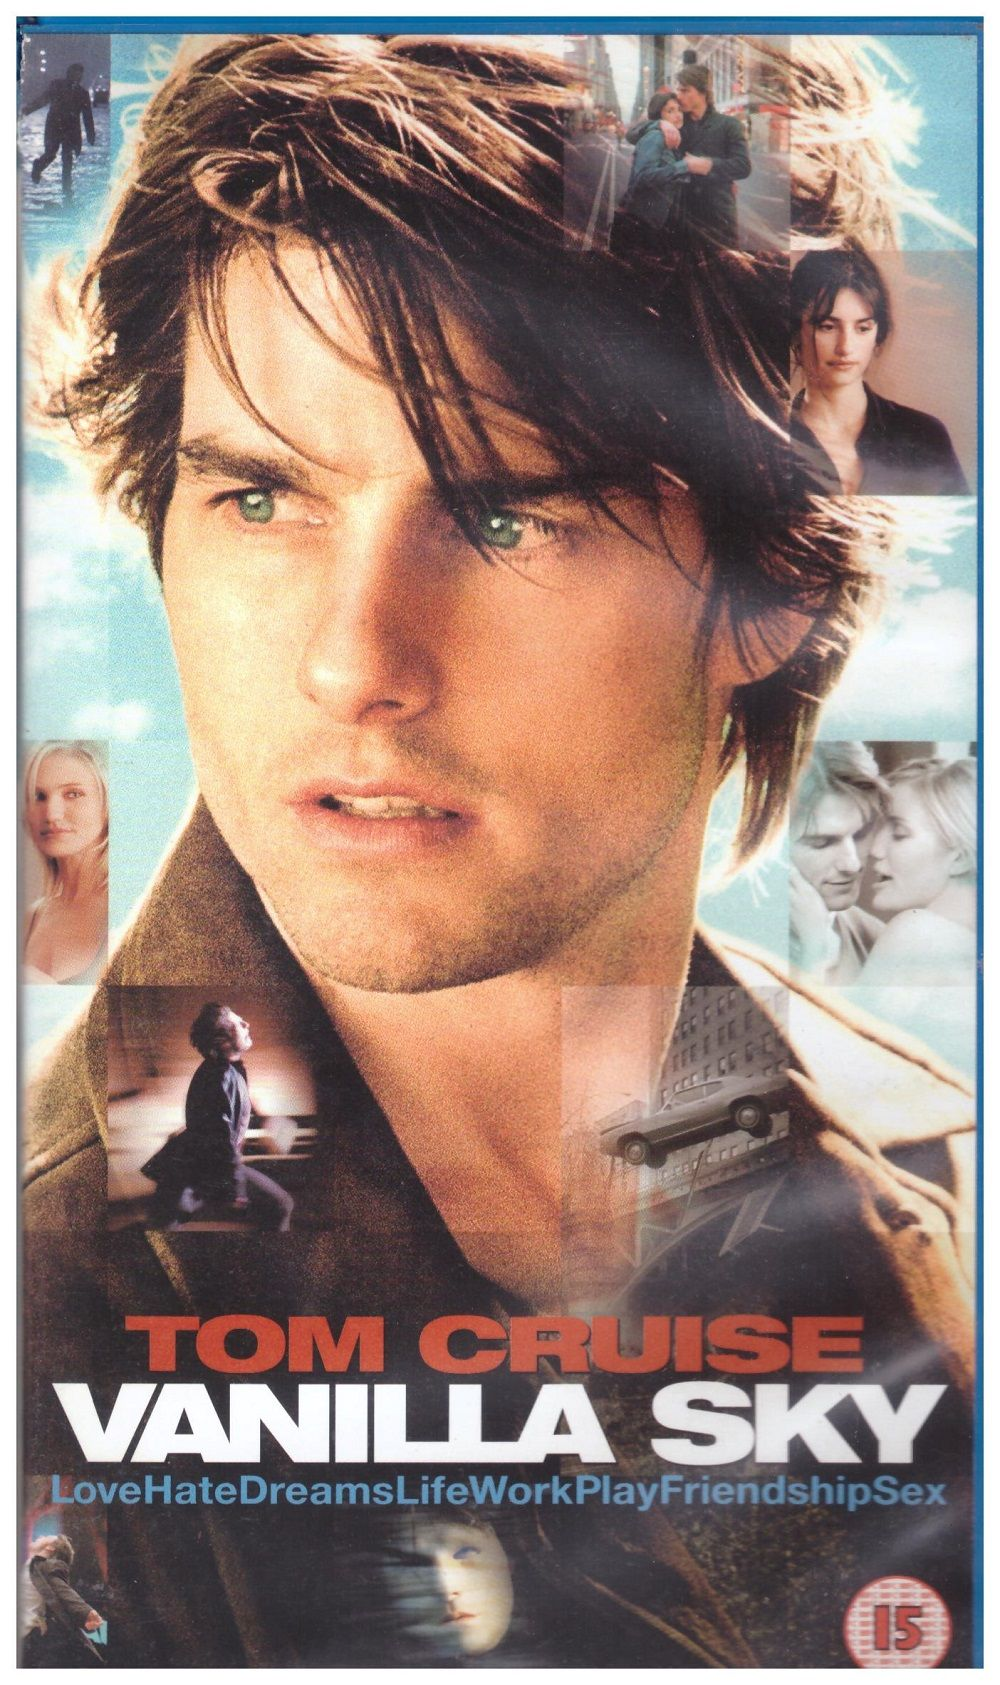 Vanilla Sky Vhs From Paramount Vhr 5322 Film Romantique Tom Cruise Films Complets